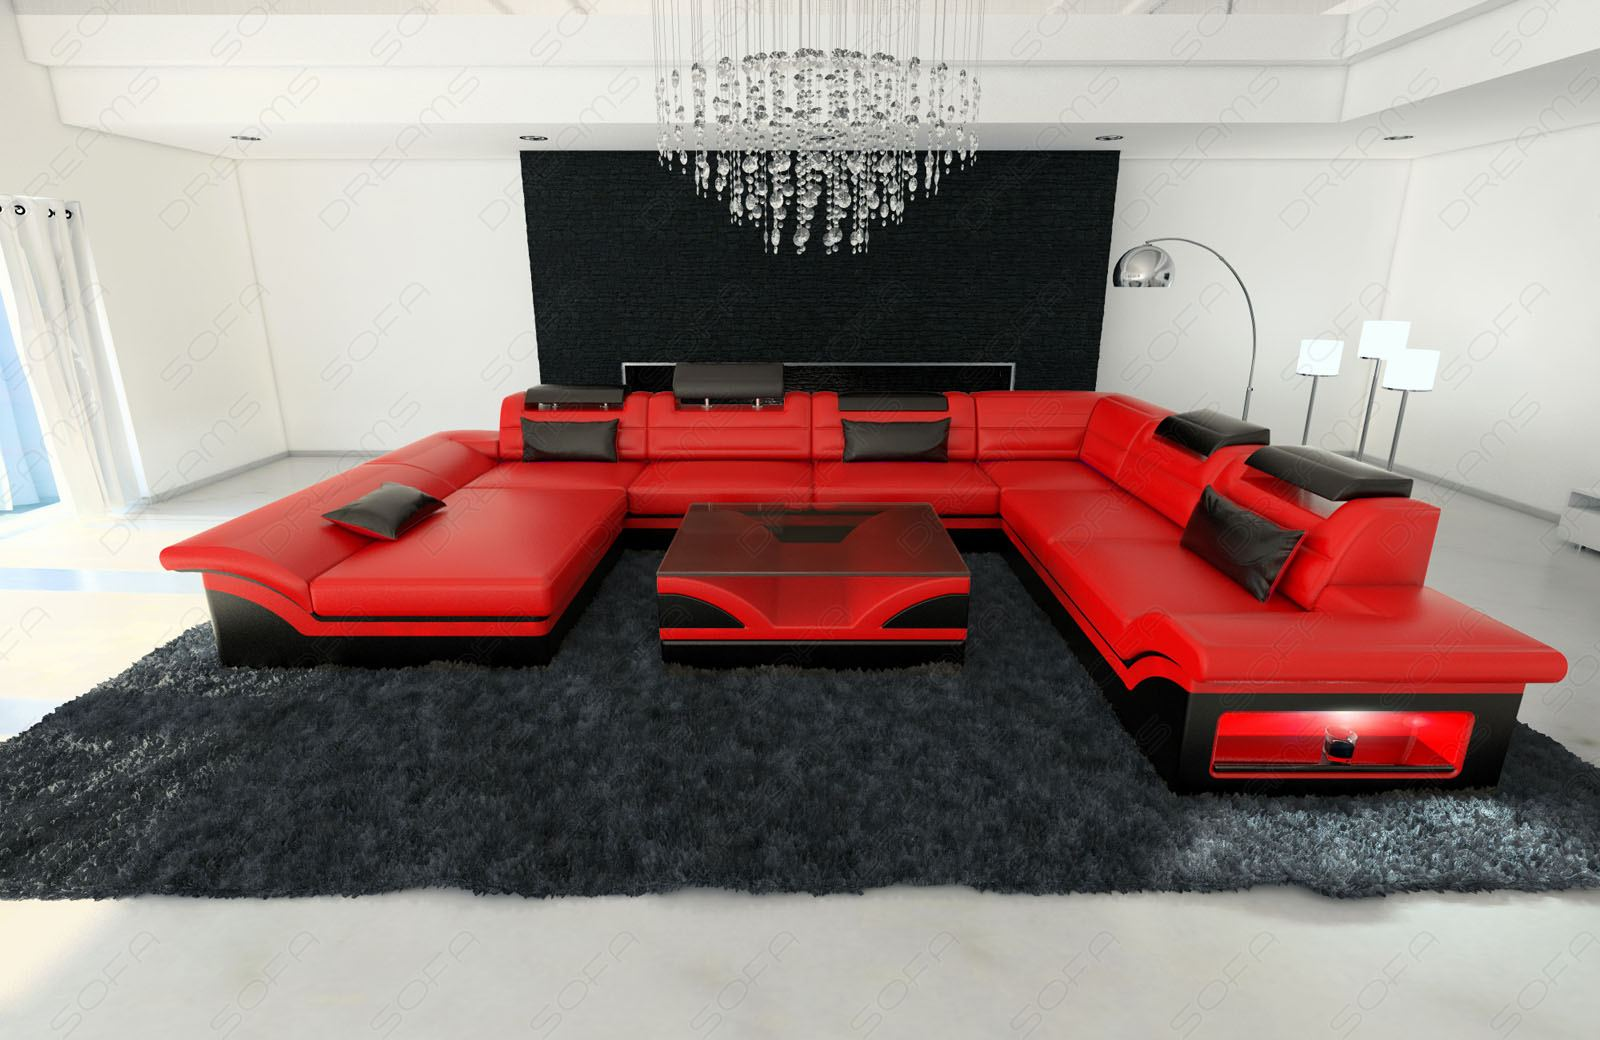 couchgarnitur moderne wohnlandschaft enzo xxl beleuchtung led rot schwarz ebay. Black Bedroom Furniture Sets. Home Design Ideas